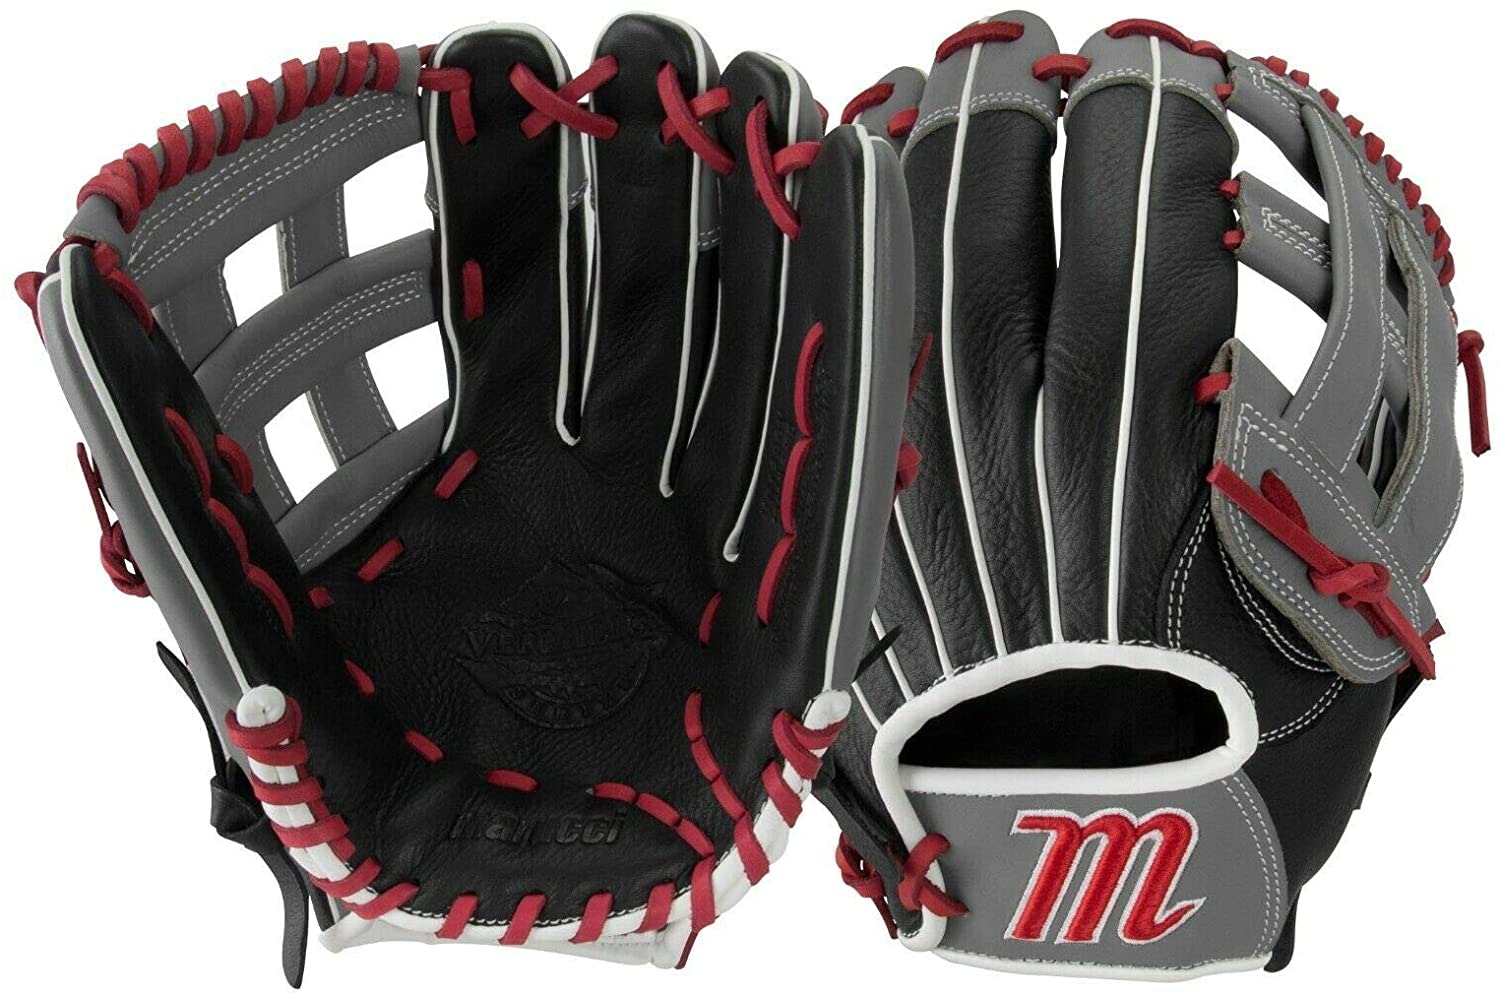 marucci-vermilion-series-vr1250y-12-50-baseball-glove-h-web-right-hand-throw MFGVR1250Y-BKR-RightHandThrow Marucci  Oiled cowhide leather shell and padded leather palm lining Reinforced finger